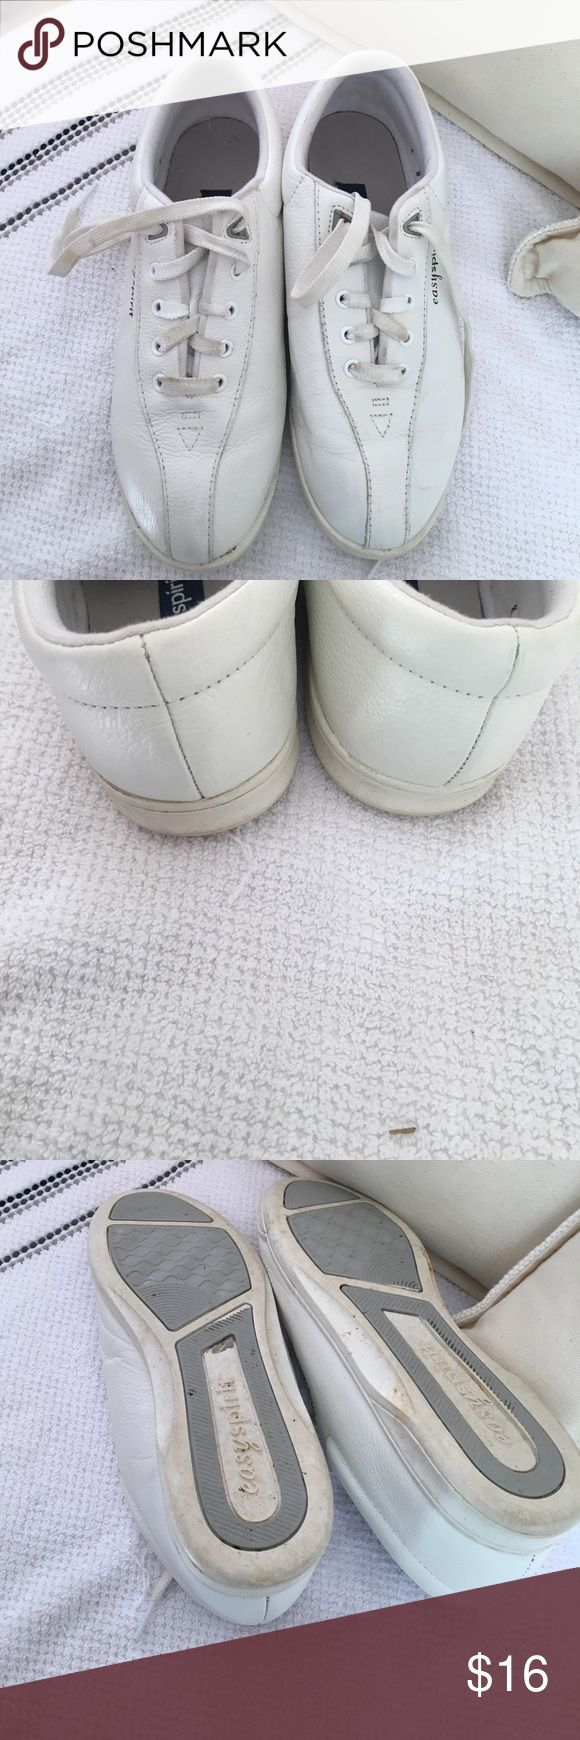 Easy Spirit Shoes Solid white leather, lace up and comfy shoes. Wore them once to walk in. Excellent condition Easy Spirit Shoes Sneakers